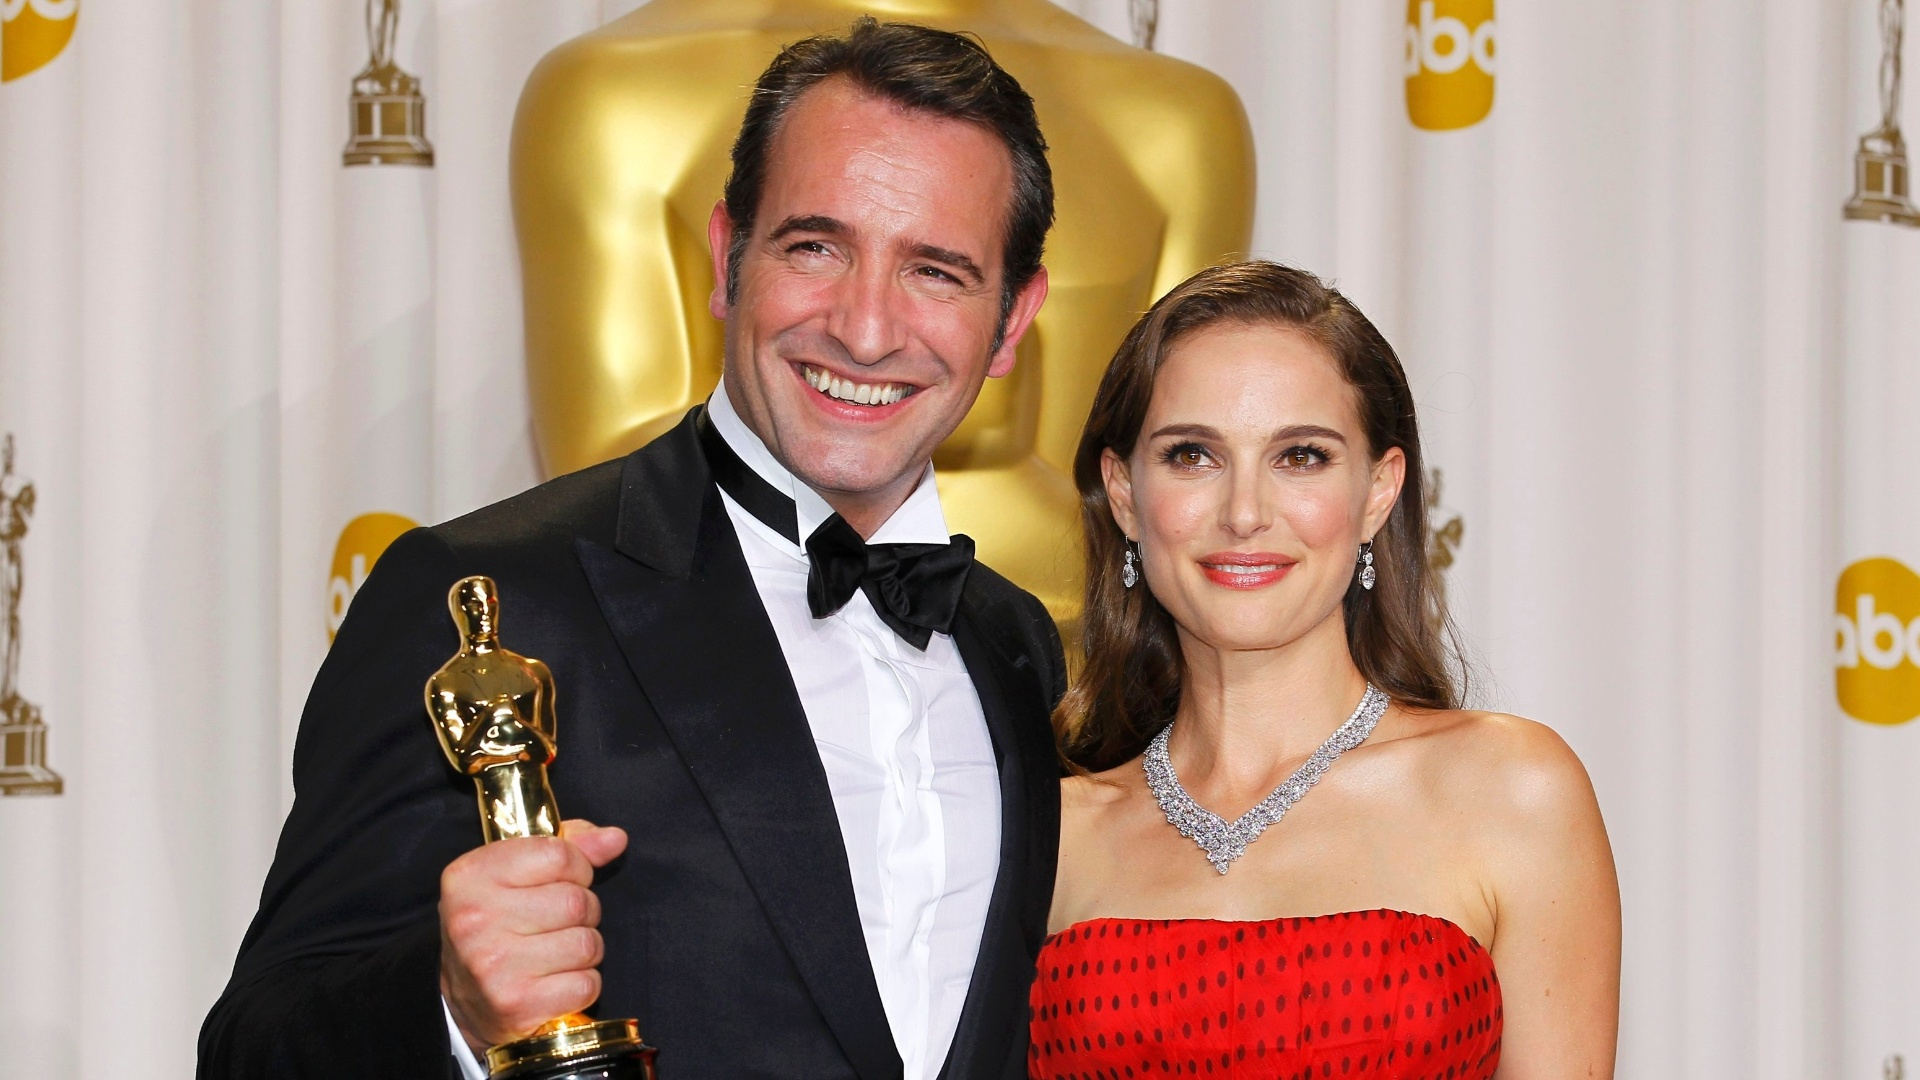 Jean Dujardin, vencedor do Oscar de melhor ator, posa com Natalie Portman (27/2/12)